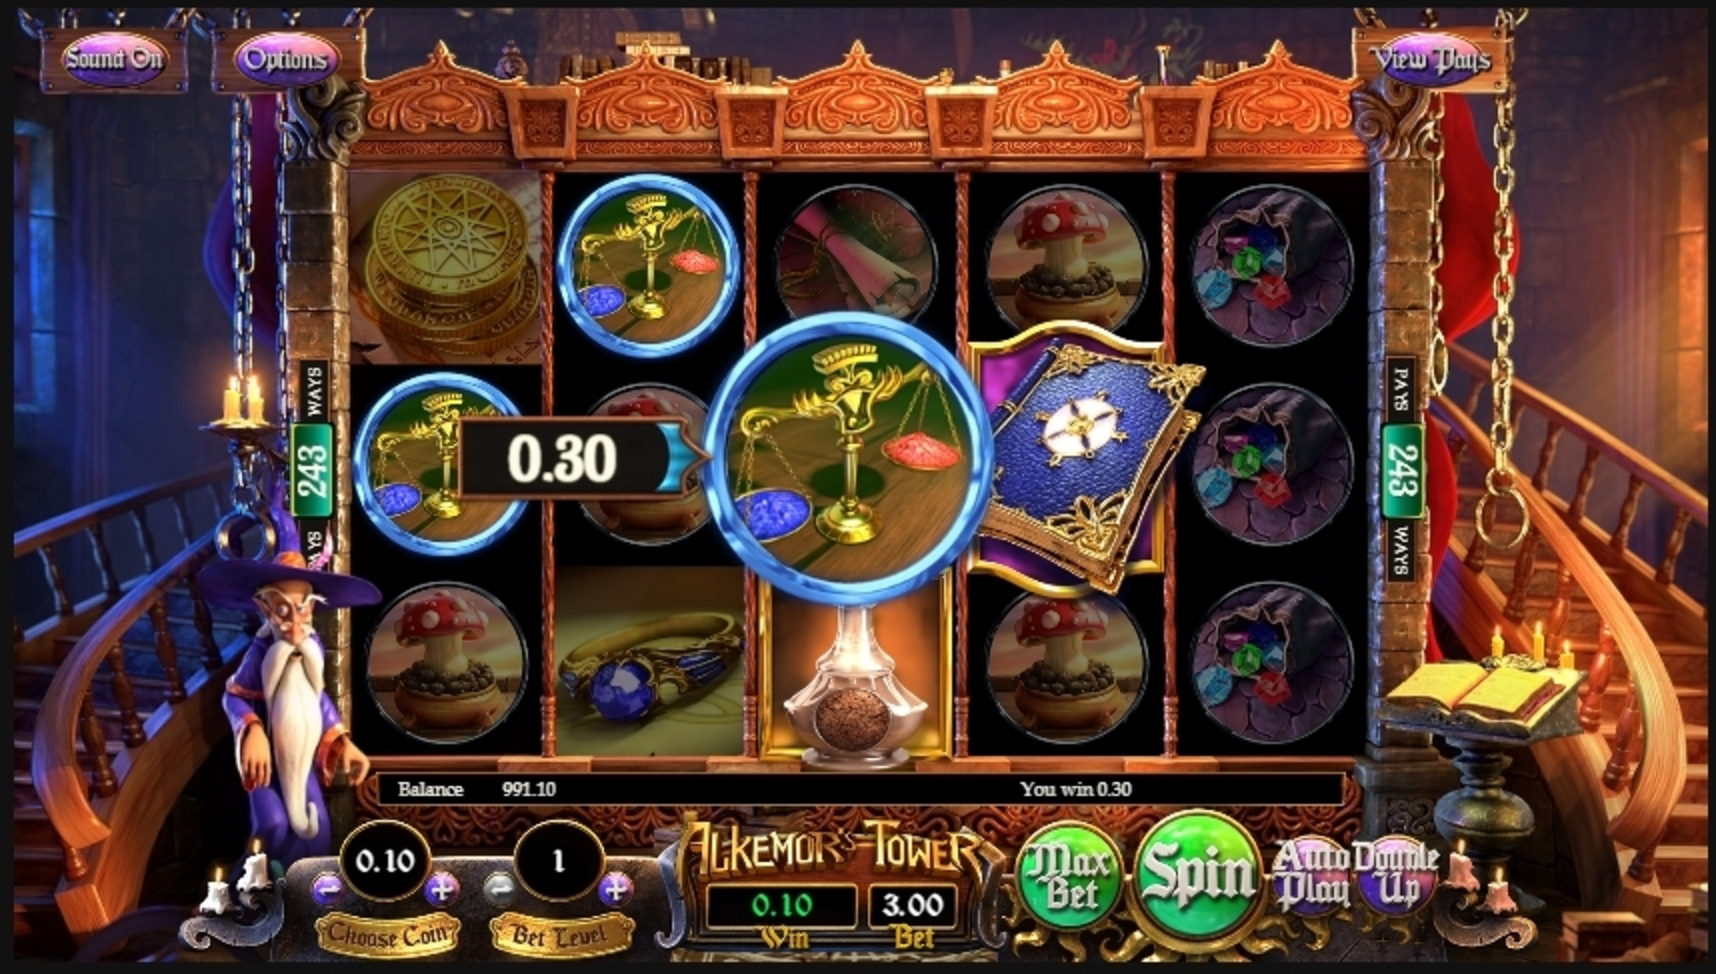 Win Money in Alkemors Tower Free Slot Game by Betsoft